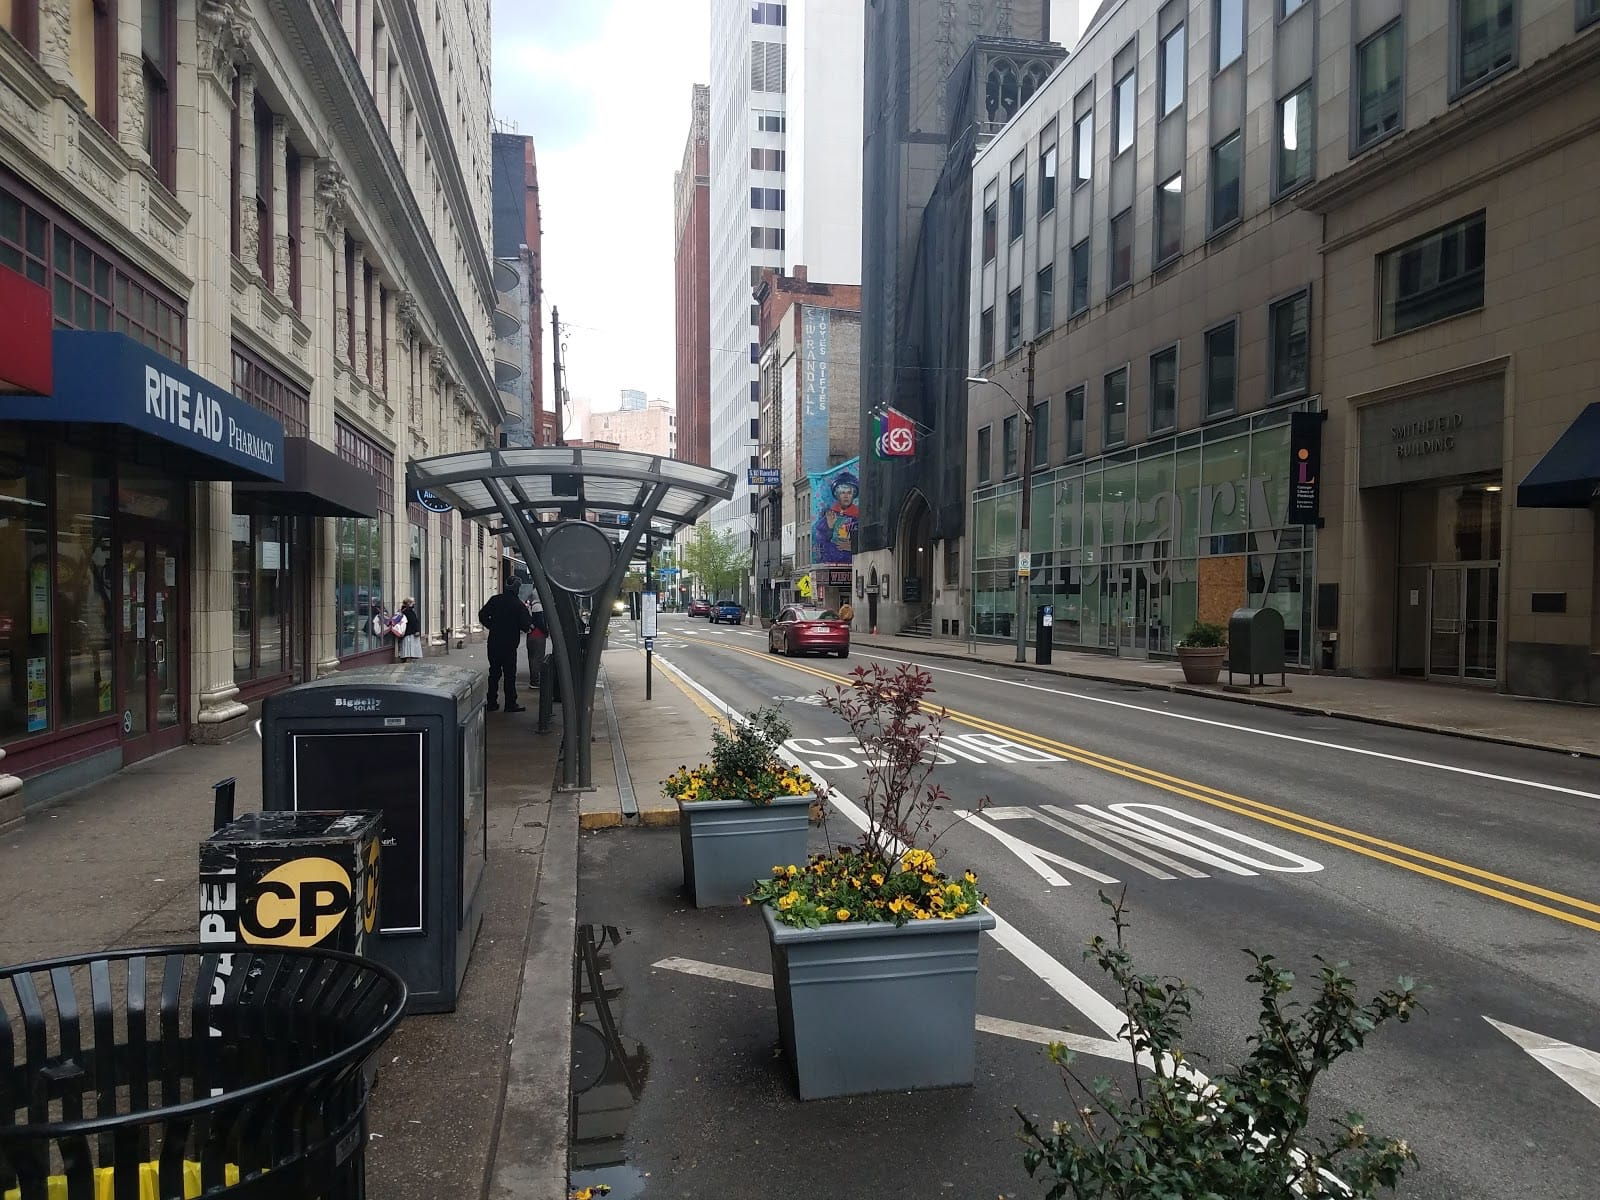 On Smithfield St in Downtown, an extended curb allows for the installation of a bus shelter for waiting passengers and planters, as well as freeing up the sidewalk for pedestrians.